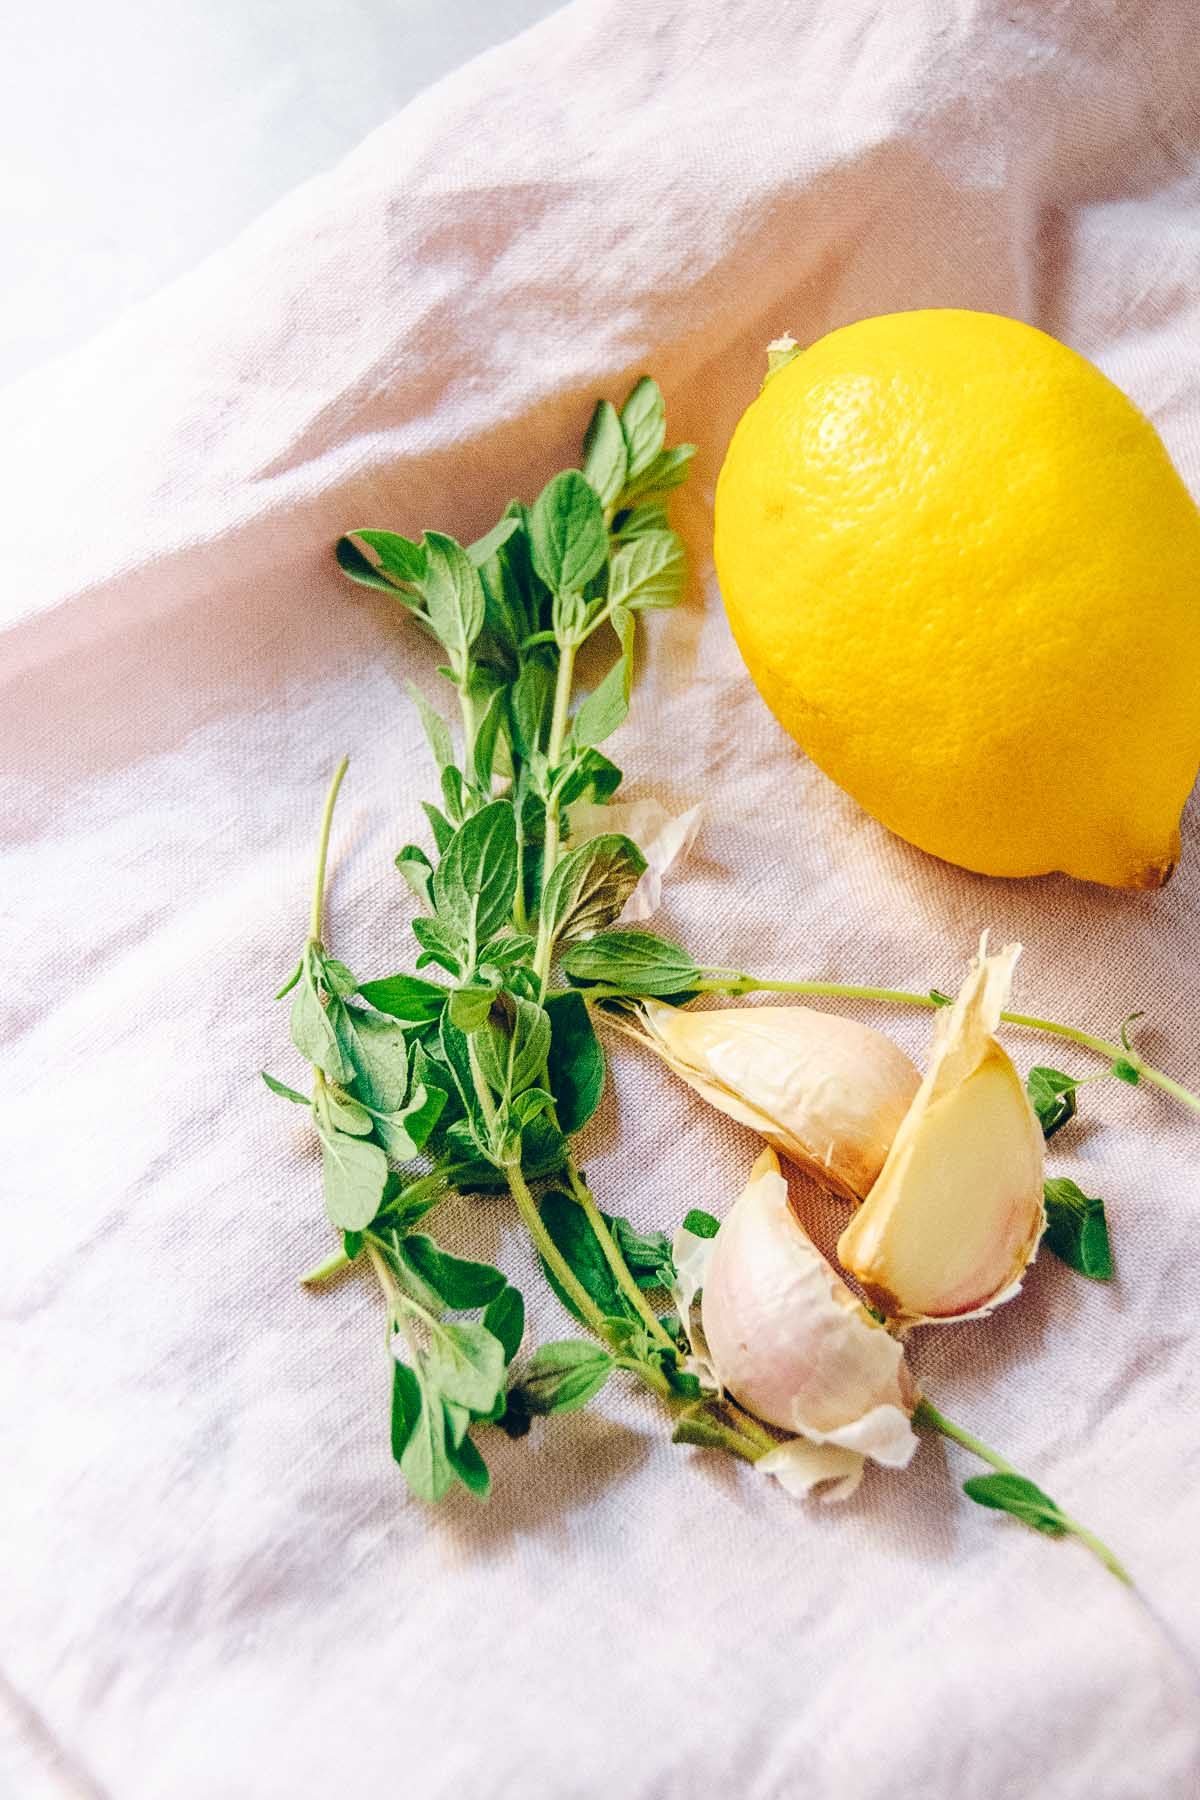 A lemon, fresh oregano and three cloves of garlic on a pink napkin.